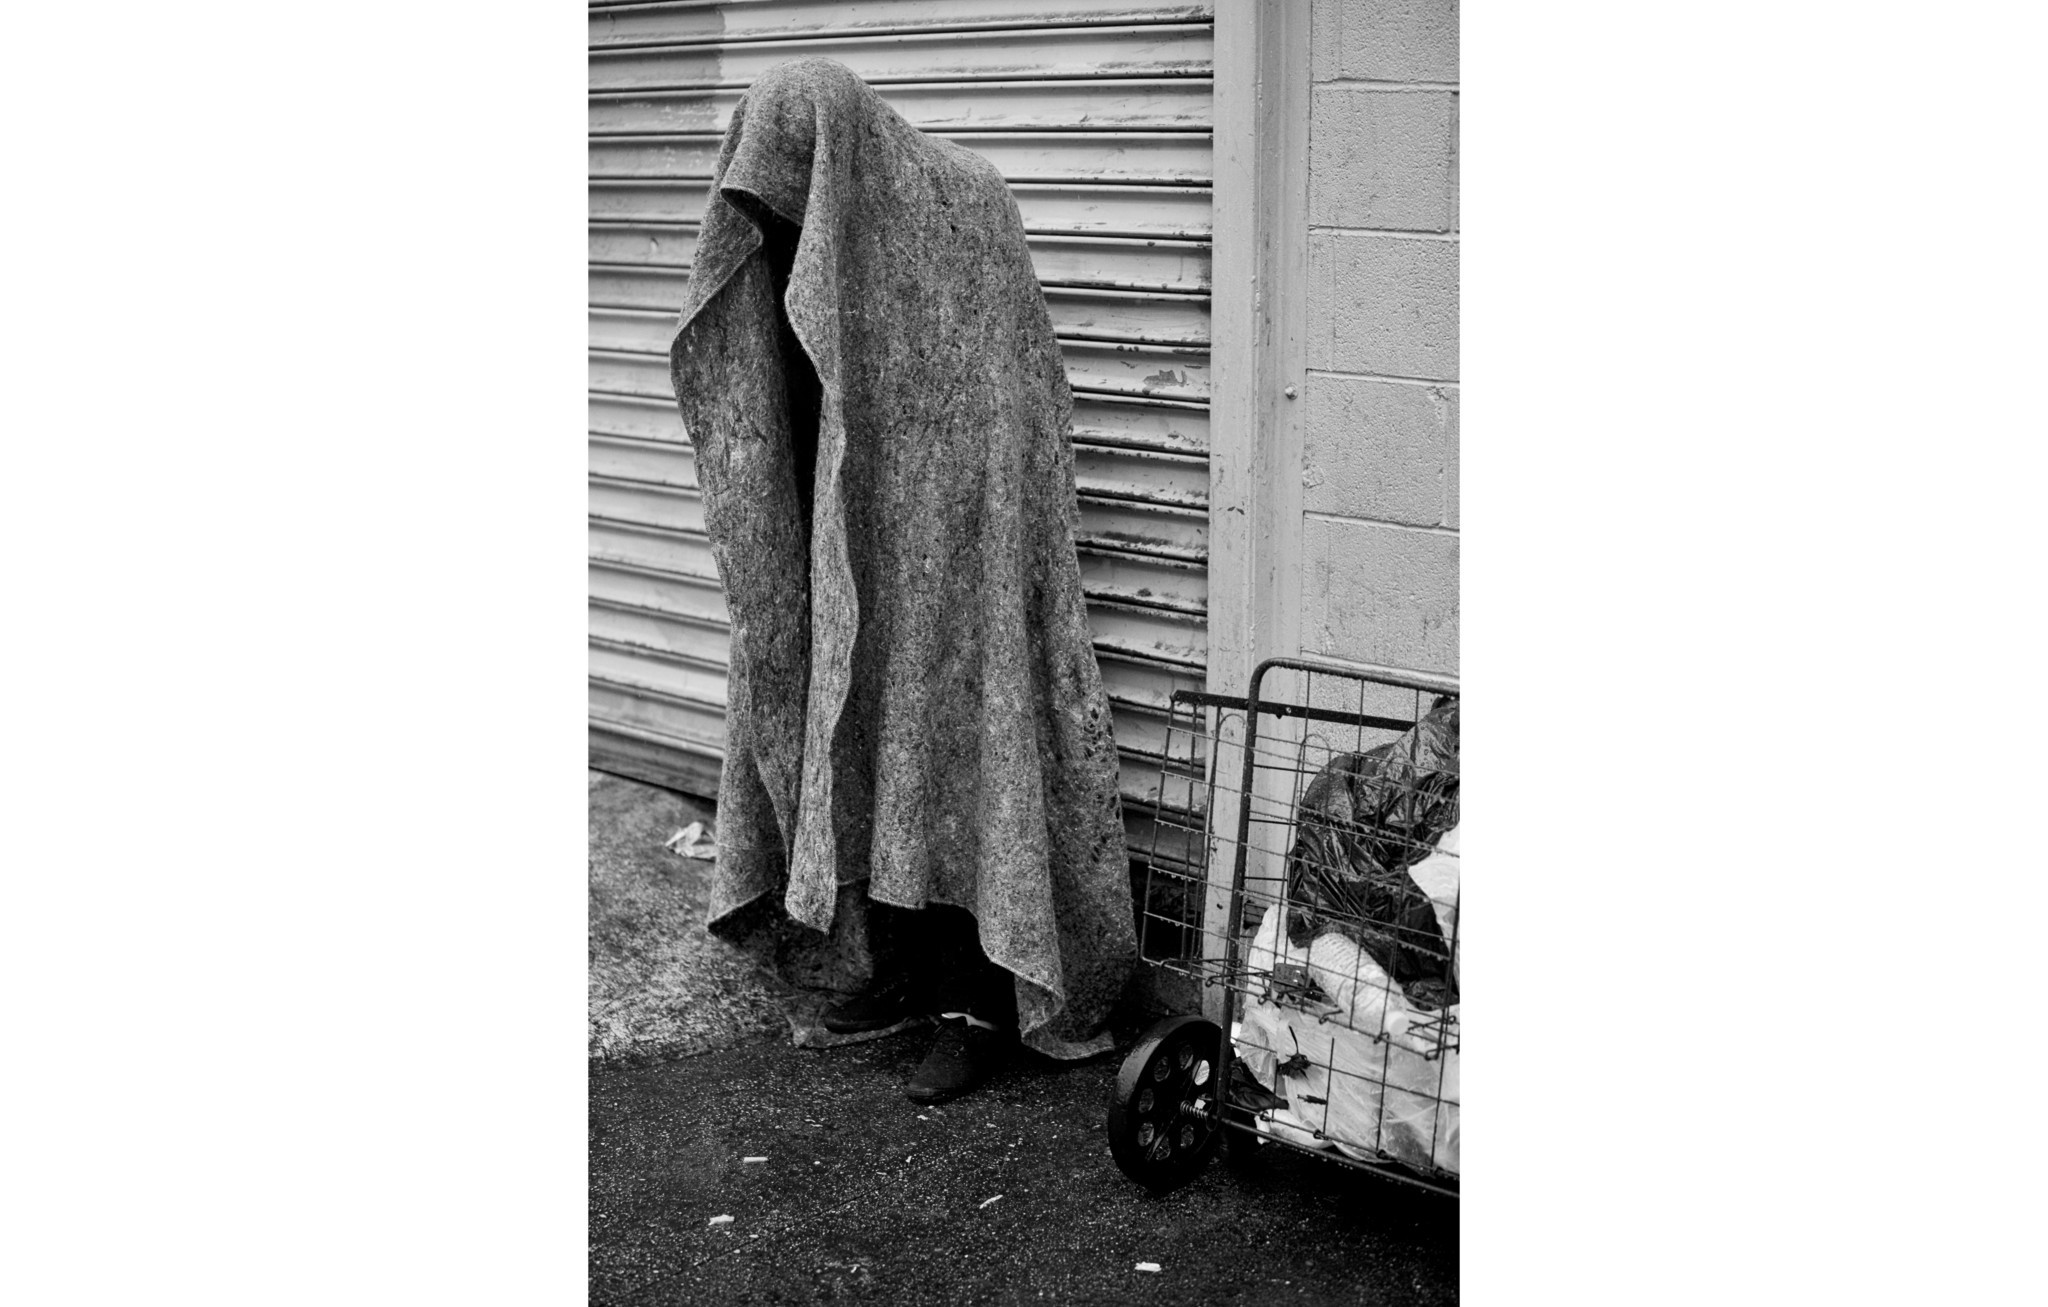 LOS ANGELES, CA - DECEMBER 2, 2014: A person stands beneath a blanket in the rain trying to keep dry